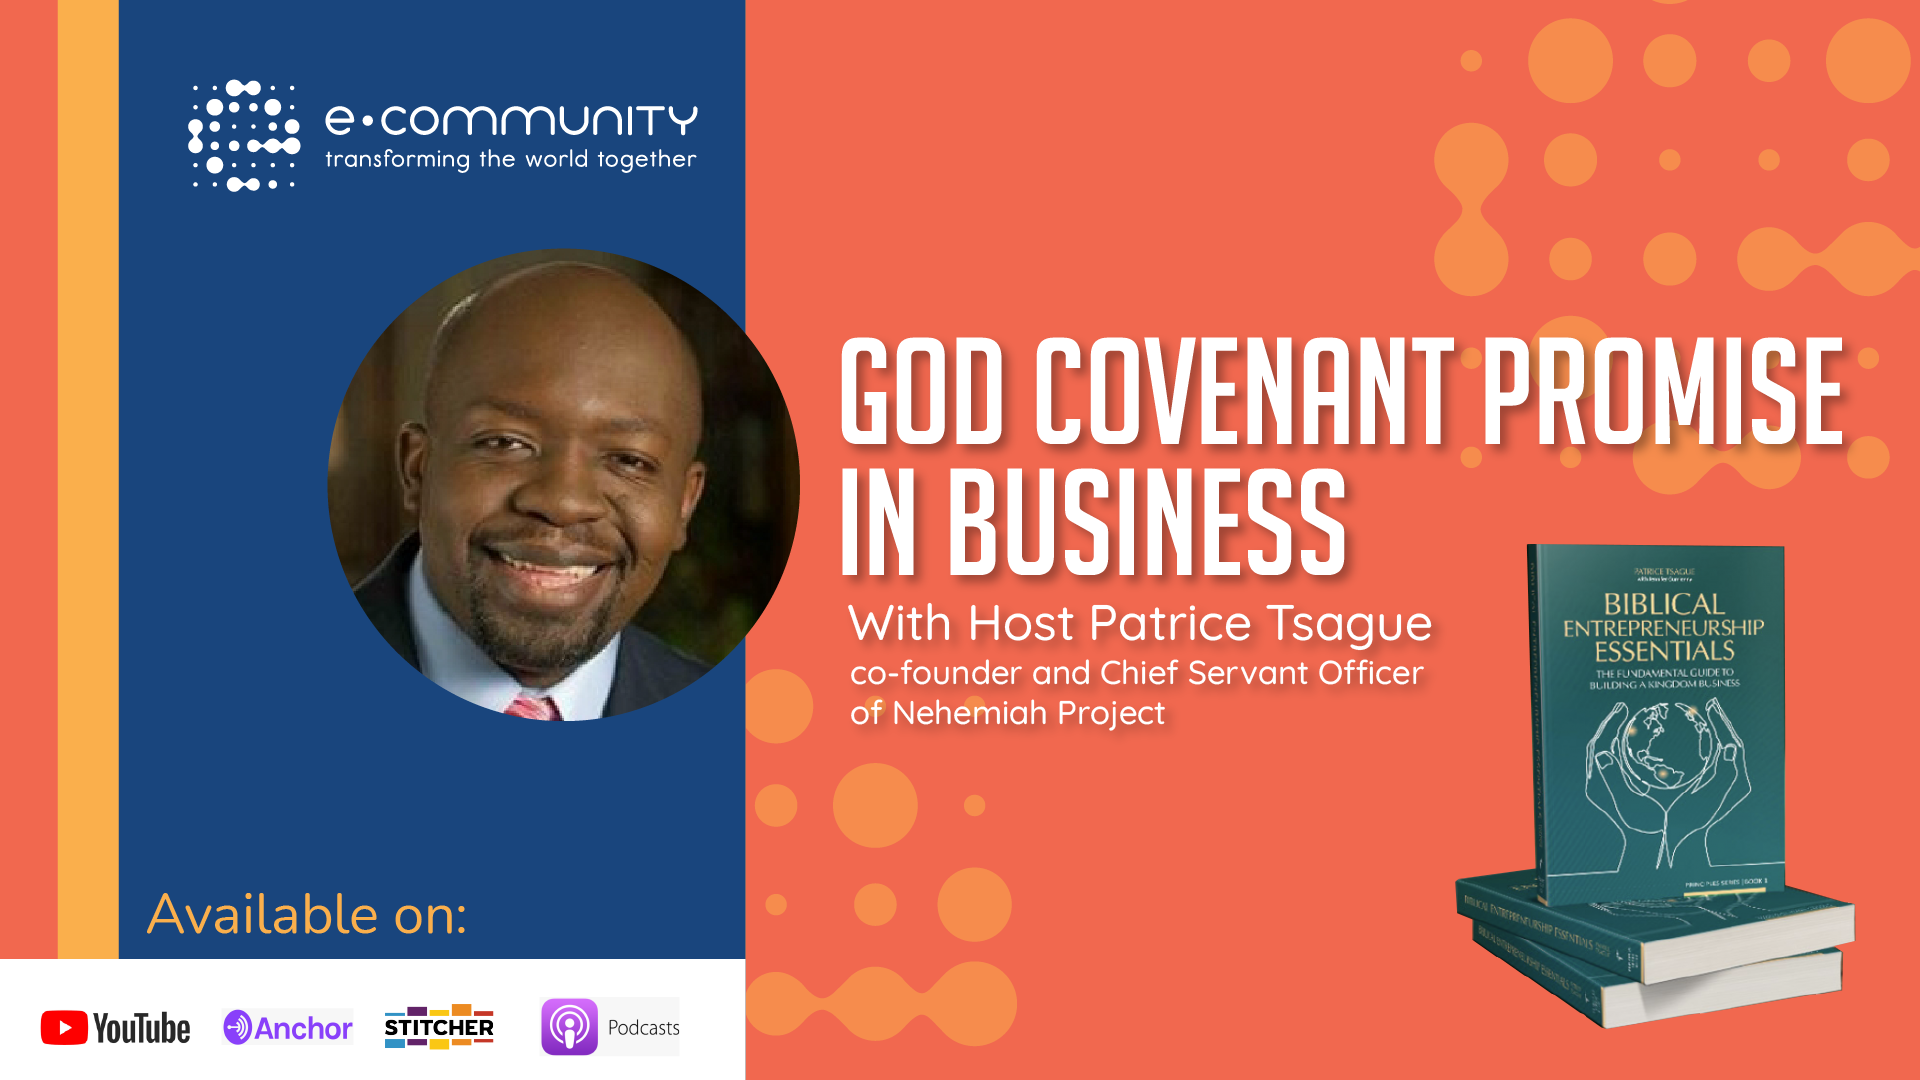 God Covenant Promise in Business